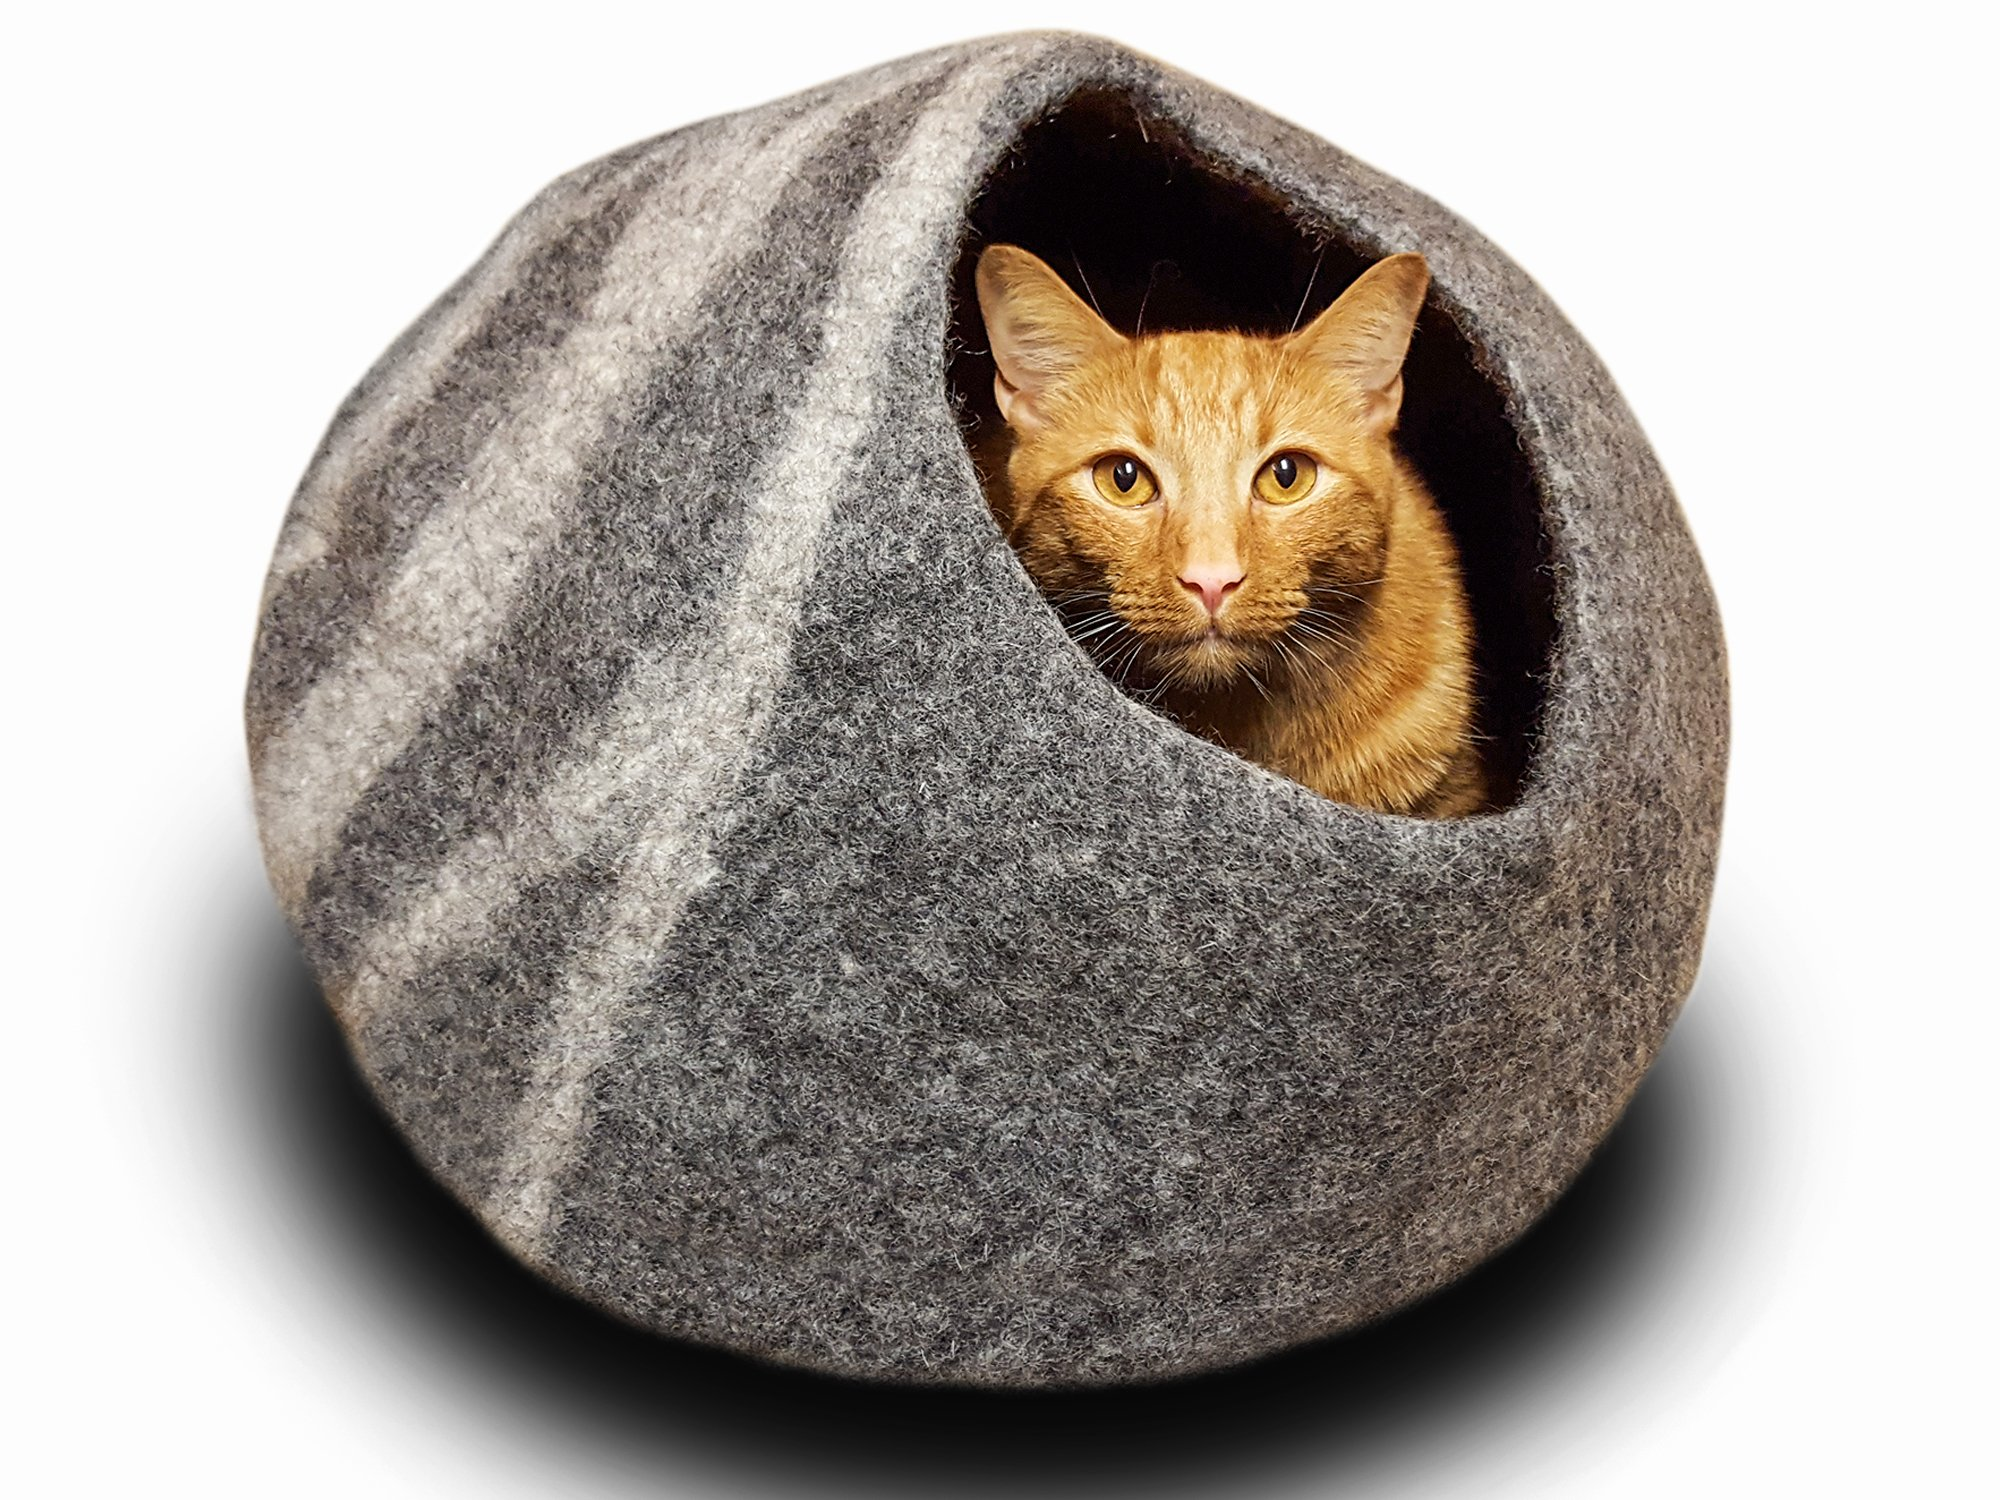 MEOWFIA Premium Felt Cat Cave Bed (Large) - Eco-Friendly 100% Merino Wool Cat Bed - Handmade - Soft and Comfy Beds for Large Cats and Kittens(Dark Grey) by MEOWFIA (Image #2)